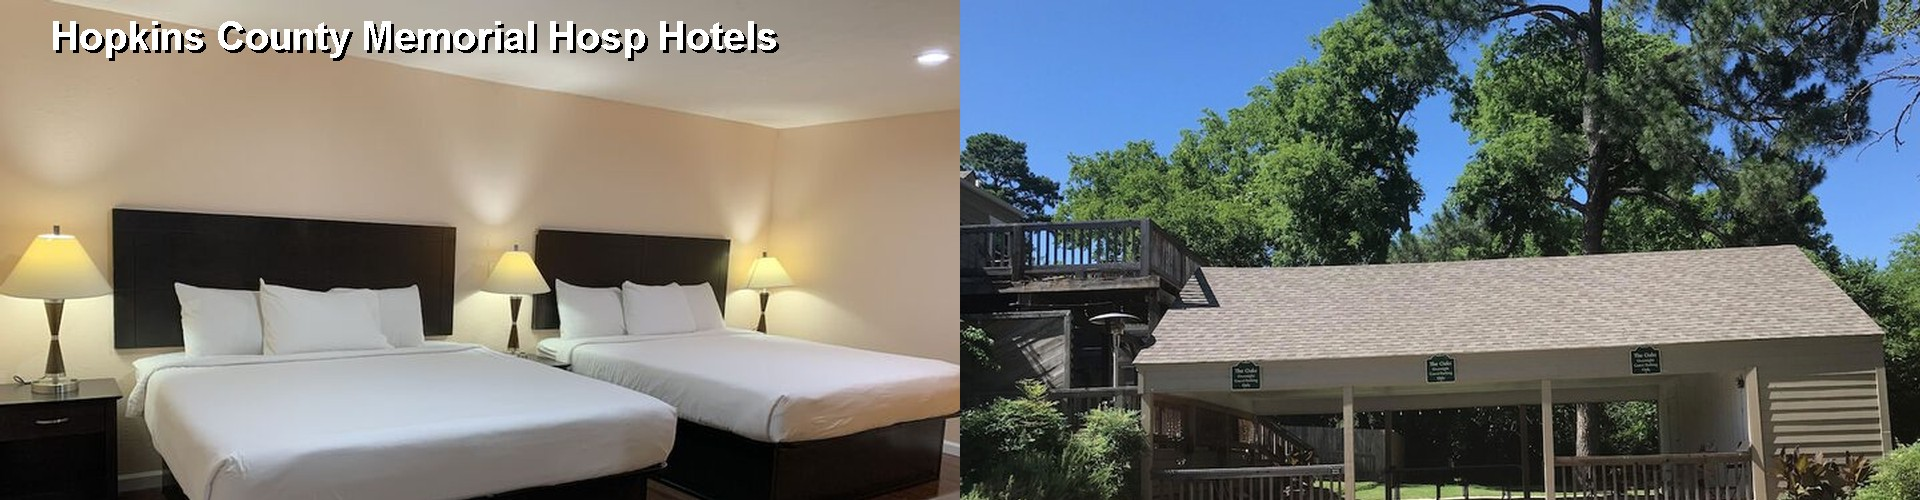 5 Best Hotels near Hopkins County Memorial Hosp